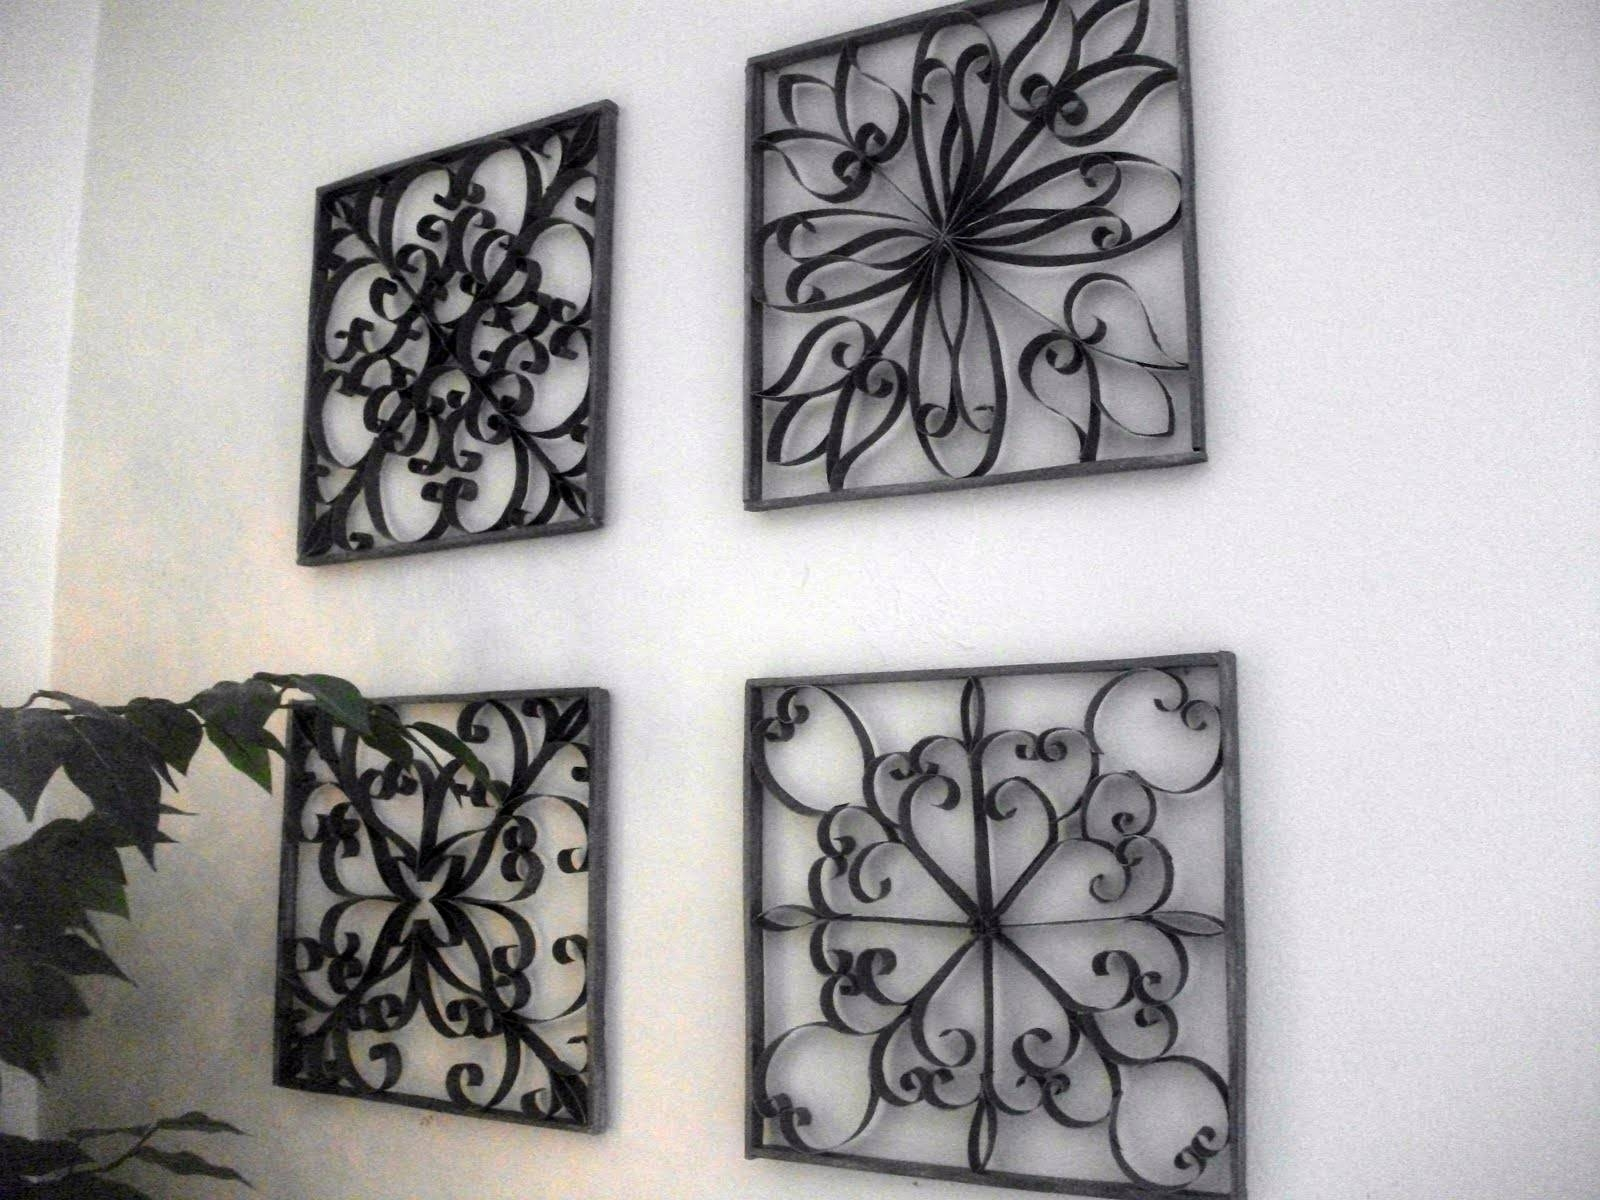 Faux Wrought Iron Wall Art | Within Most Recent Faux Wrought Iron Wall Art (View 11 of 30)